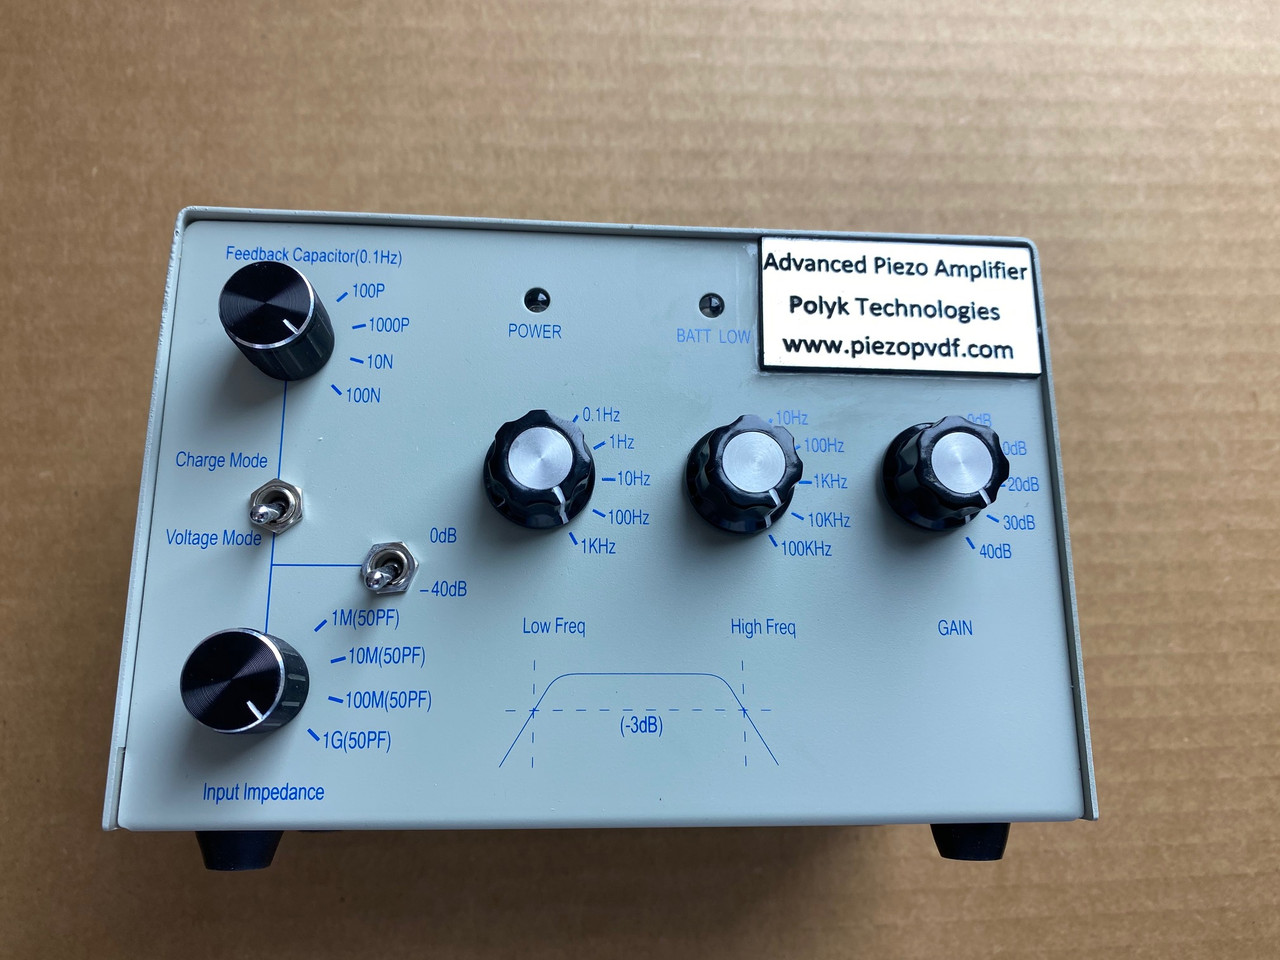 Advanced Amplifier for Piezo and Pyro Sensor with both charge and voltage mode